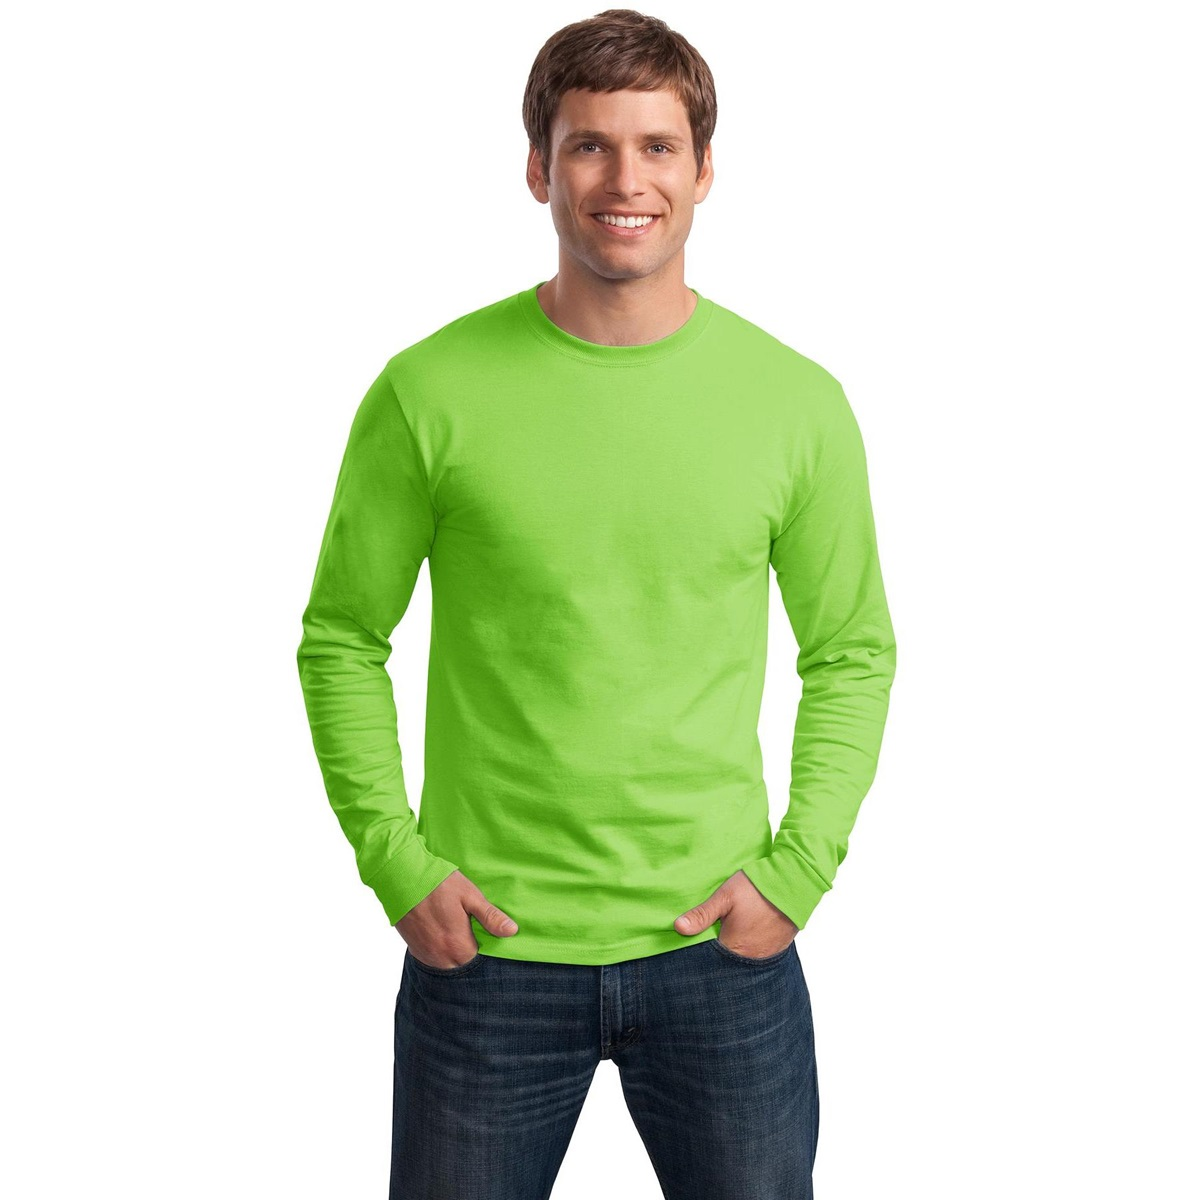 Hanes 5586 Tagless Cotton Long Sleeve T-Shirt - Yellow ...